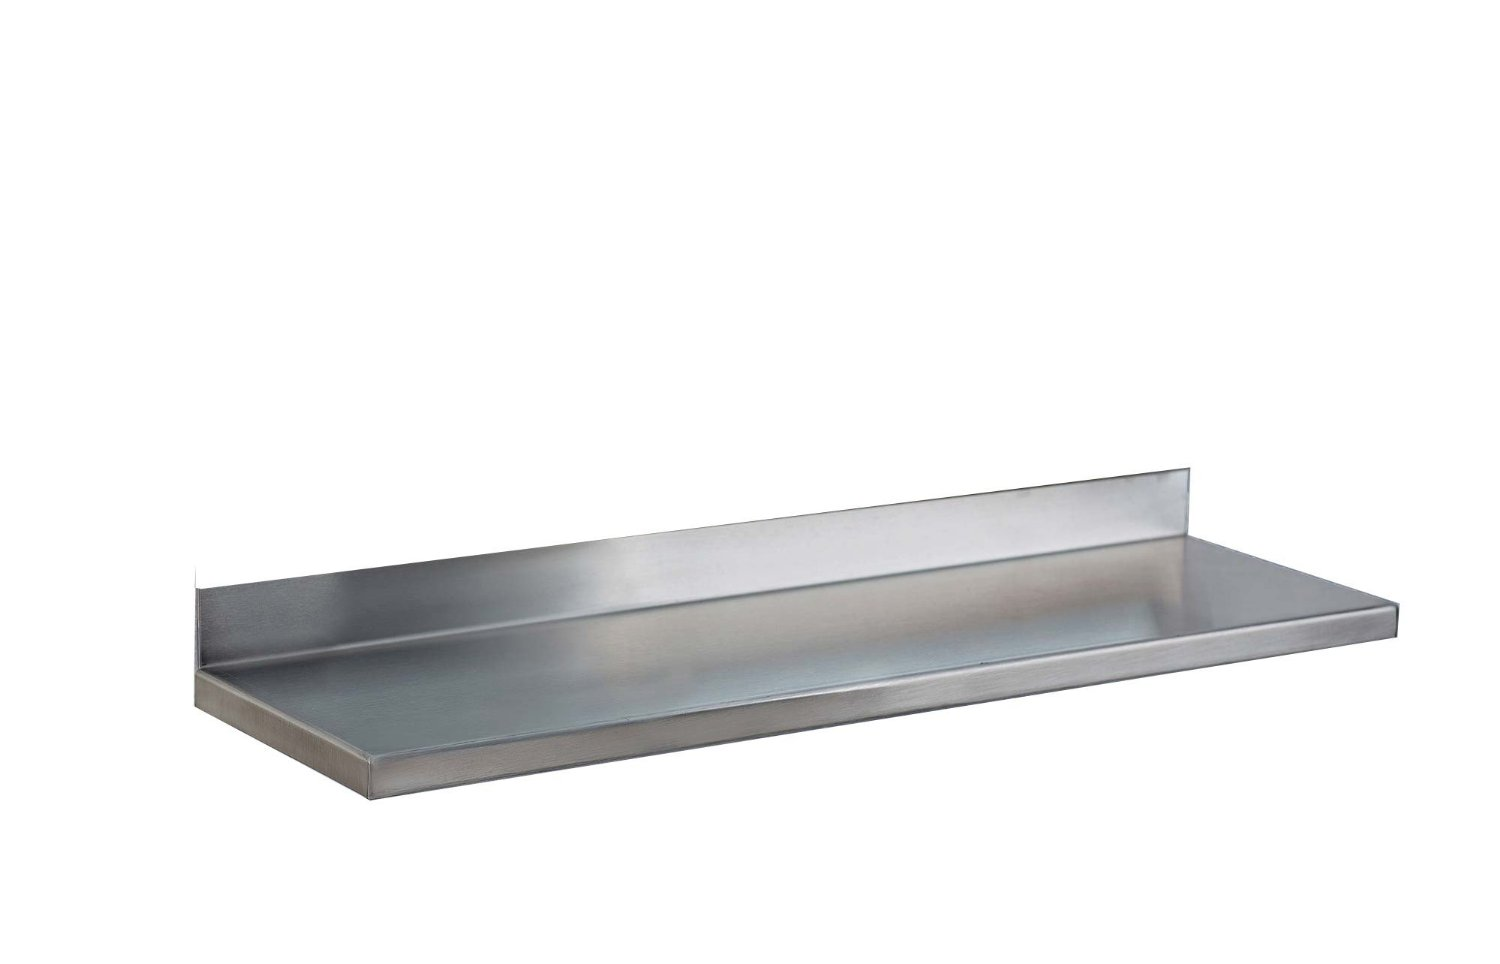 36-inch x 6-inch, Integral shelf, bright finish